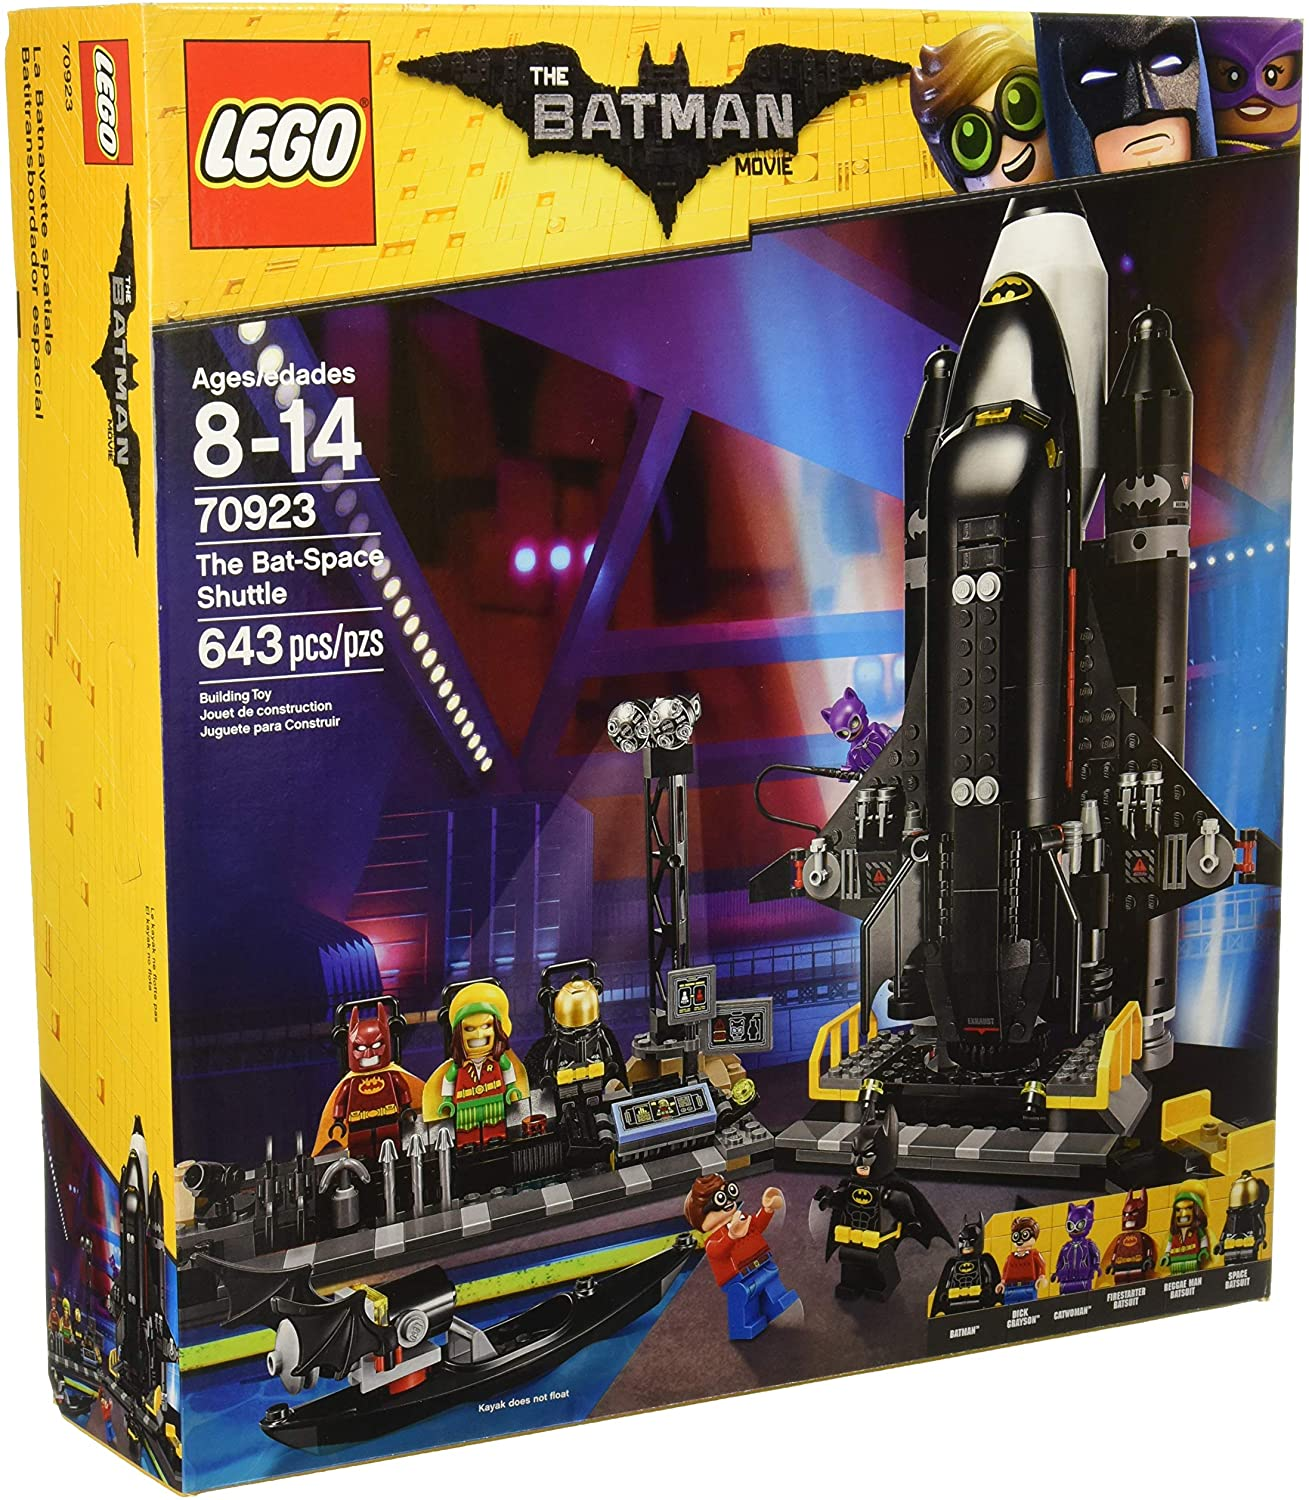 Amazon Com Lego Batman Movie Dc The Bat Space Shuttle 70923 Building Kit 643 Piece Toys Games